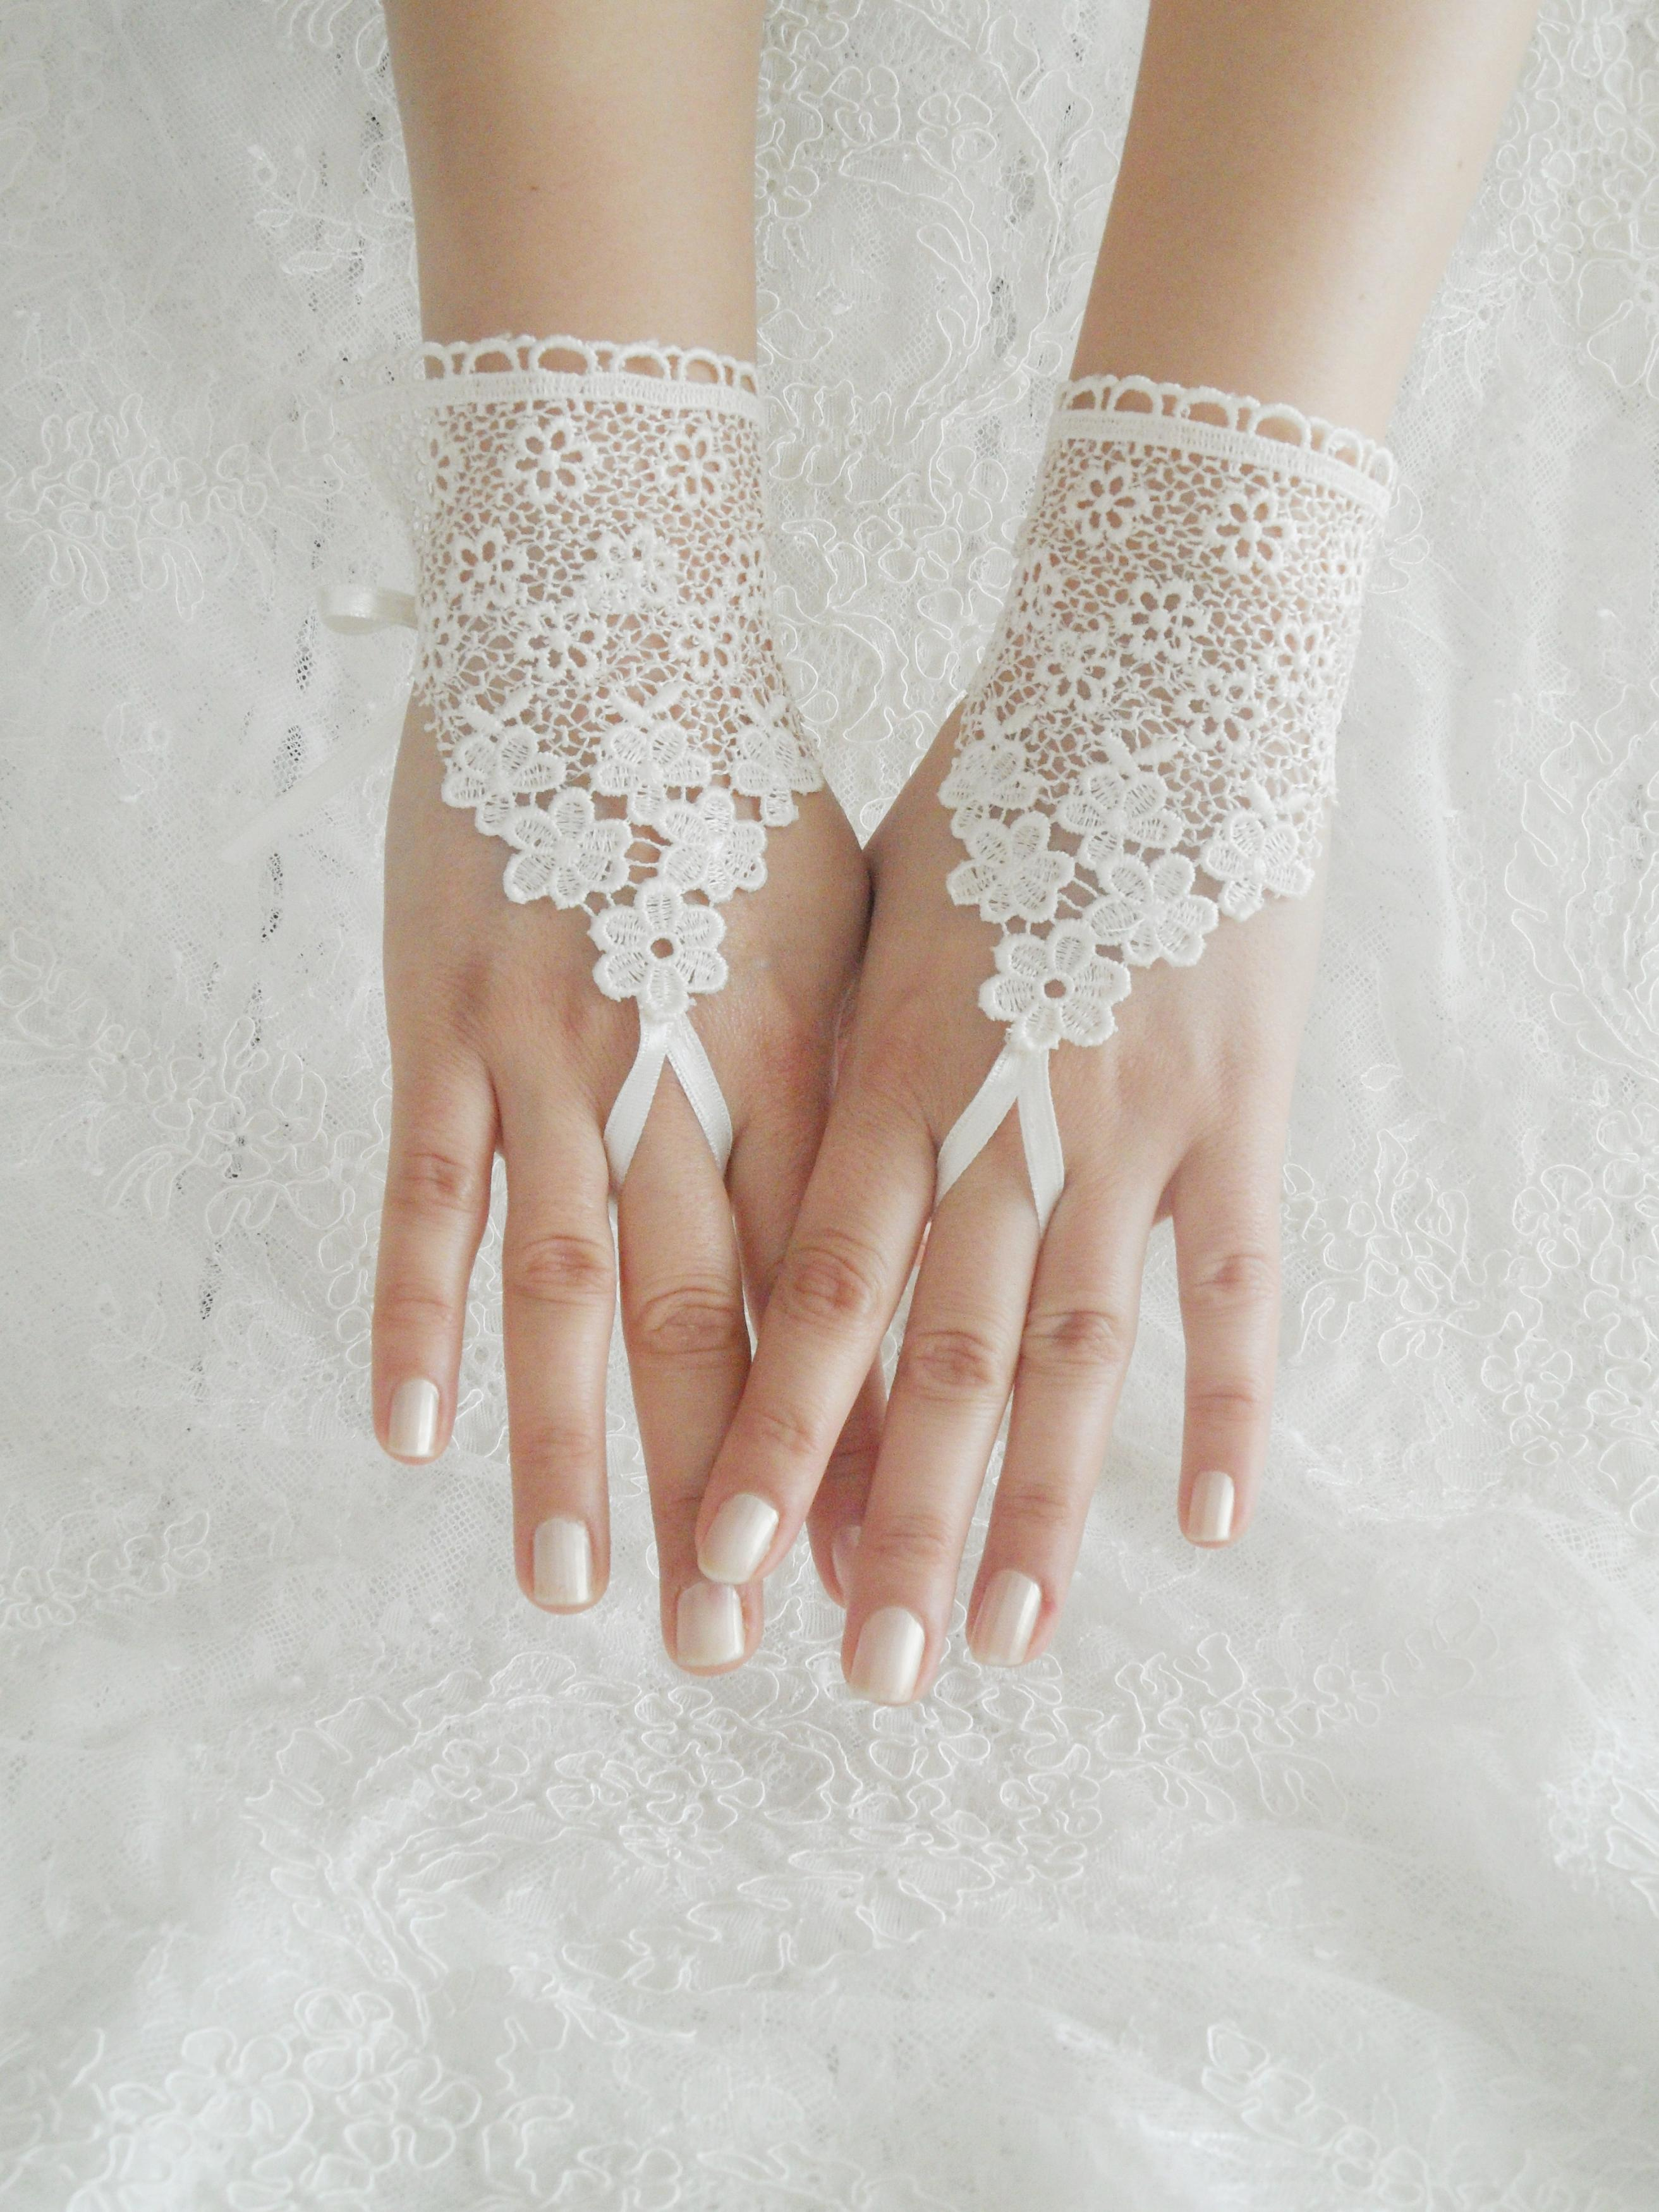 Fingerless gloves canada - Wedding Gloves Ivory Lace Gloves Fingerless Gloves Ivory Wedding Gown Off Cuffs Cuff Wedding Bride Bridal Gloves Ivory